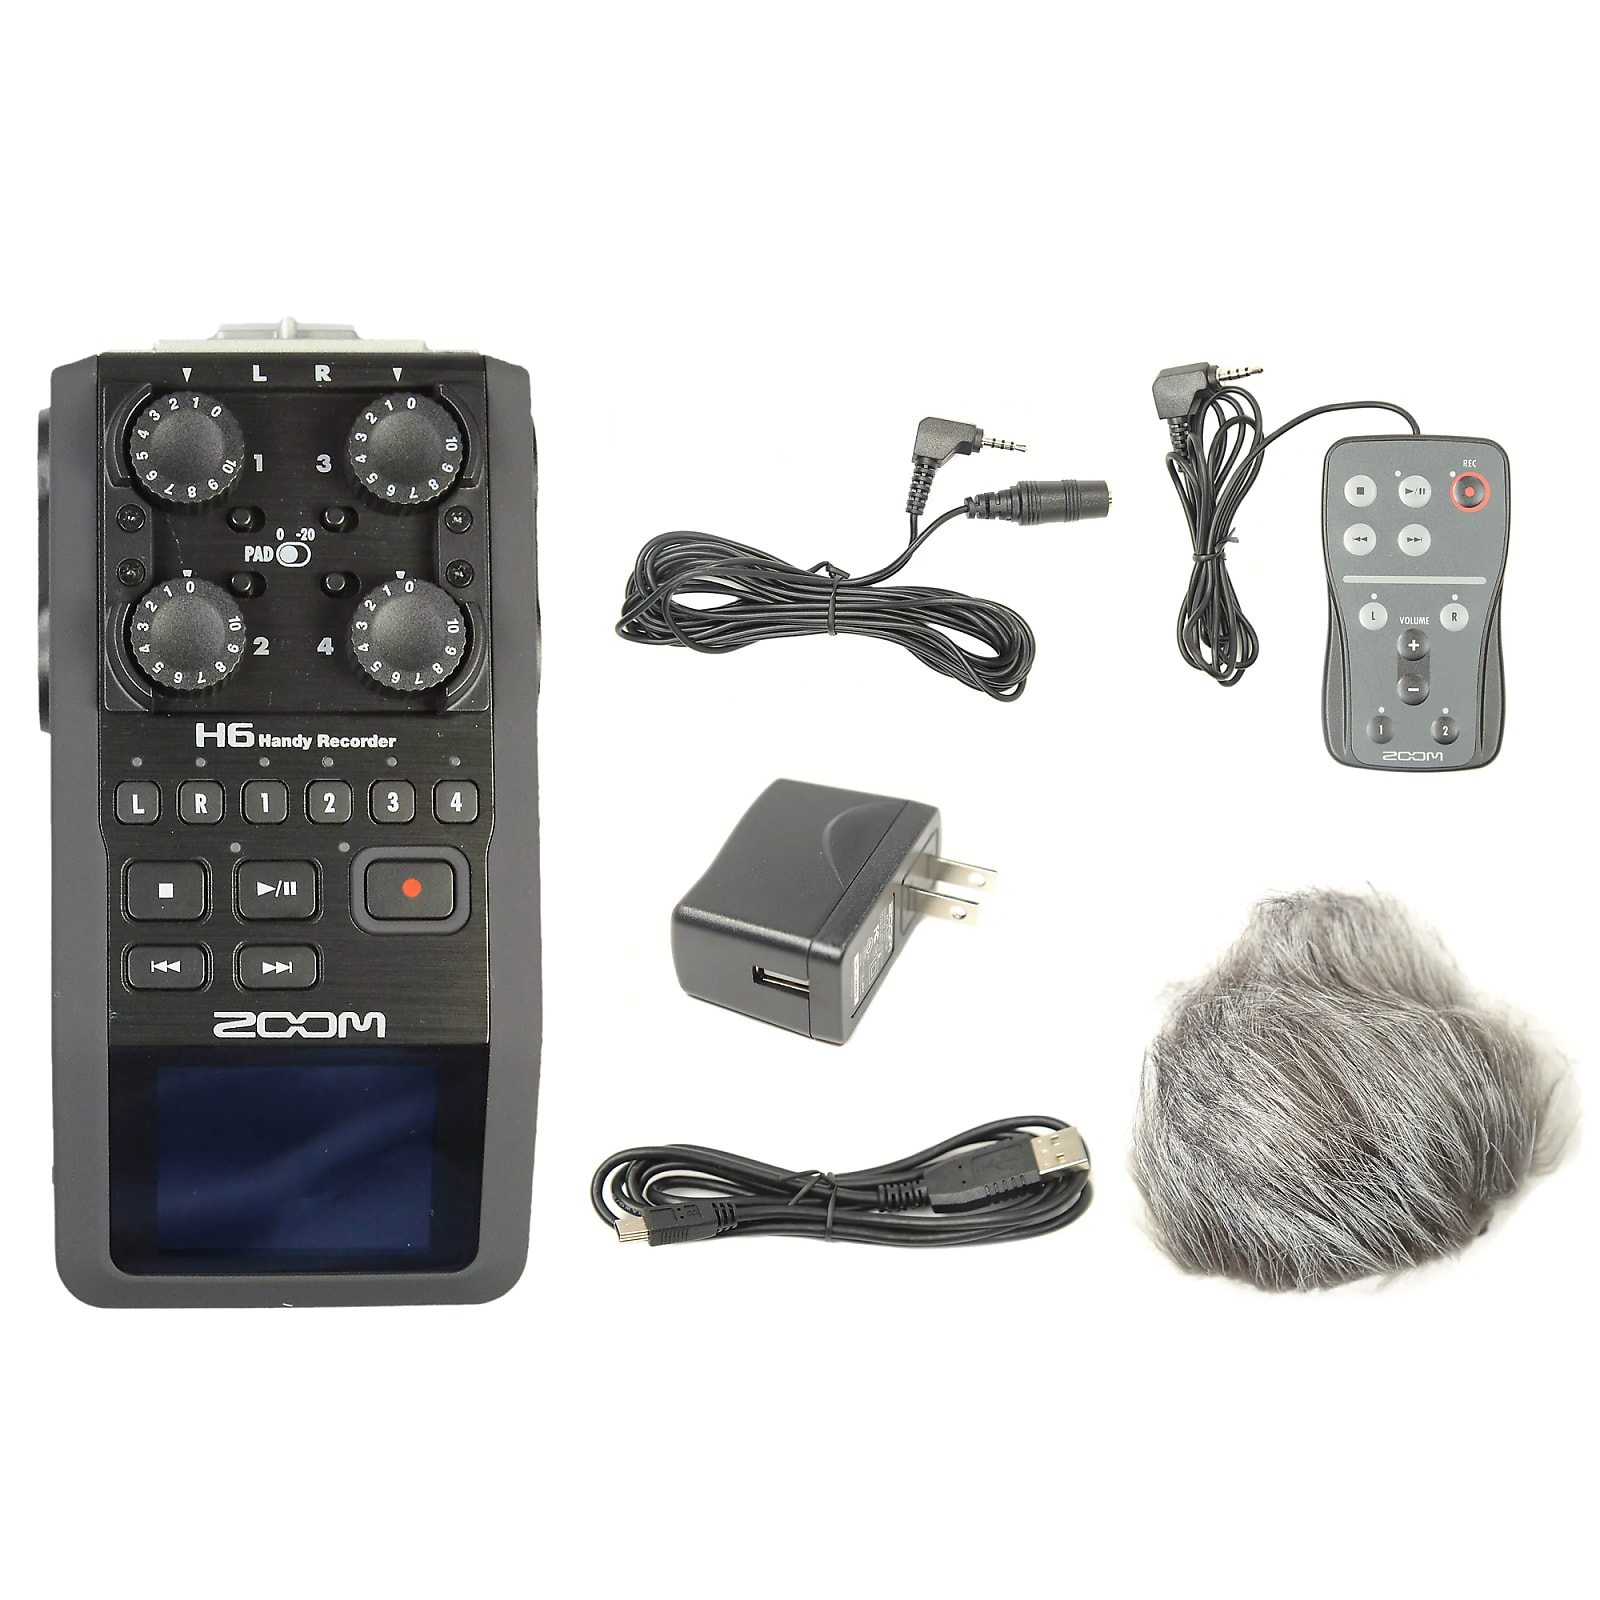 Zoom H5 Handy Recorder and Accessory Pack Bundle